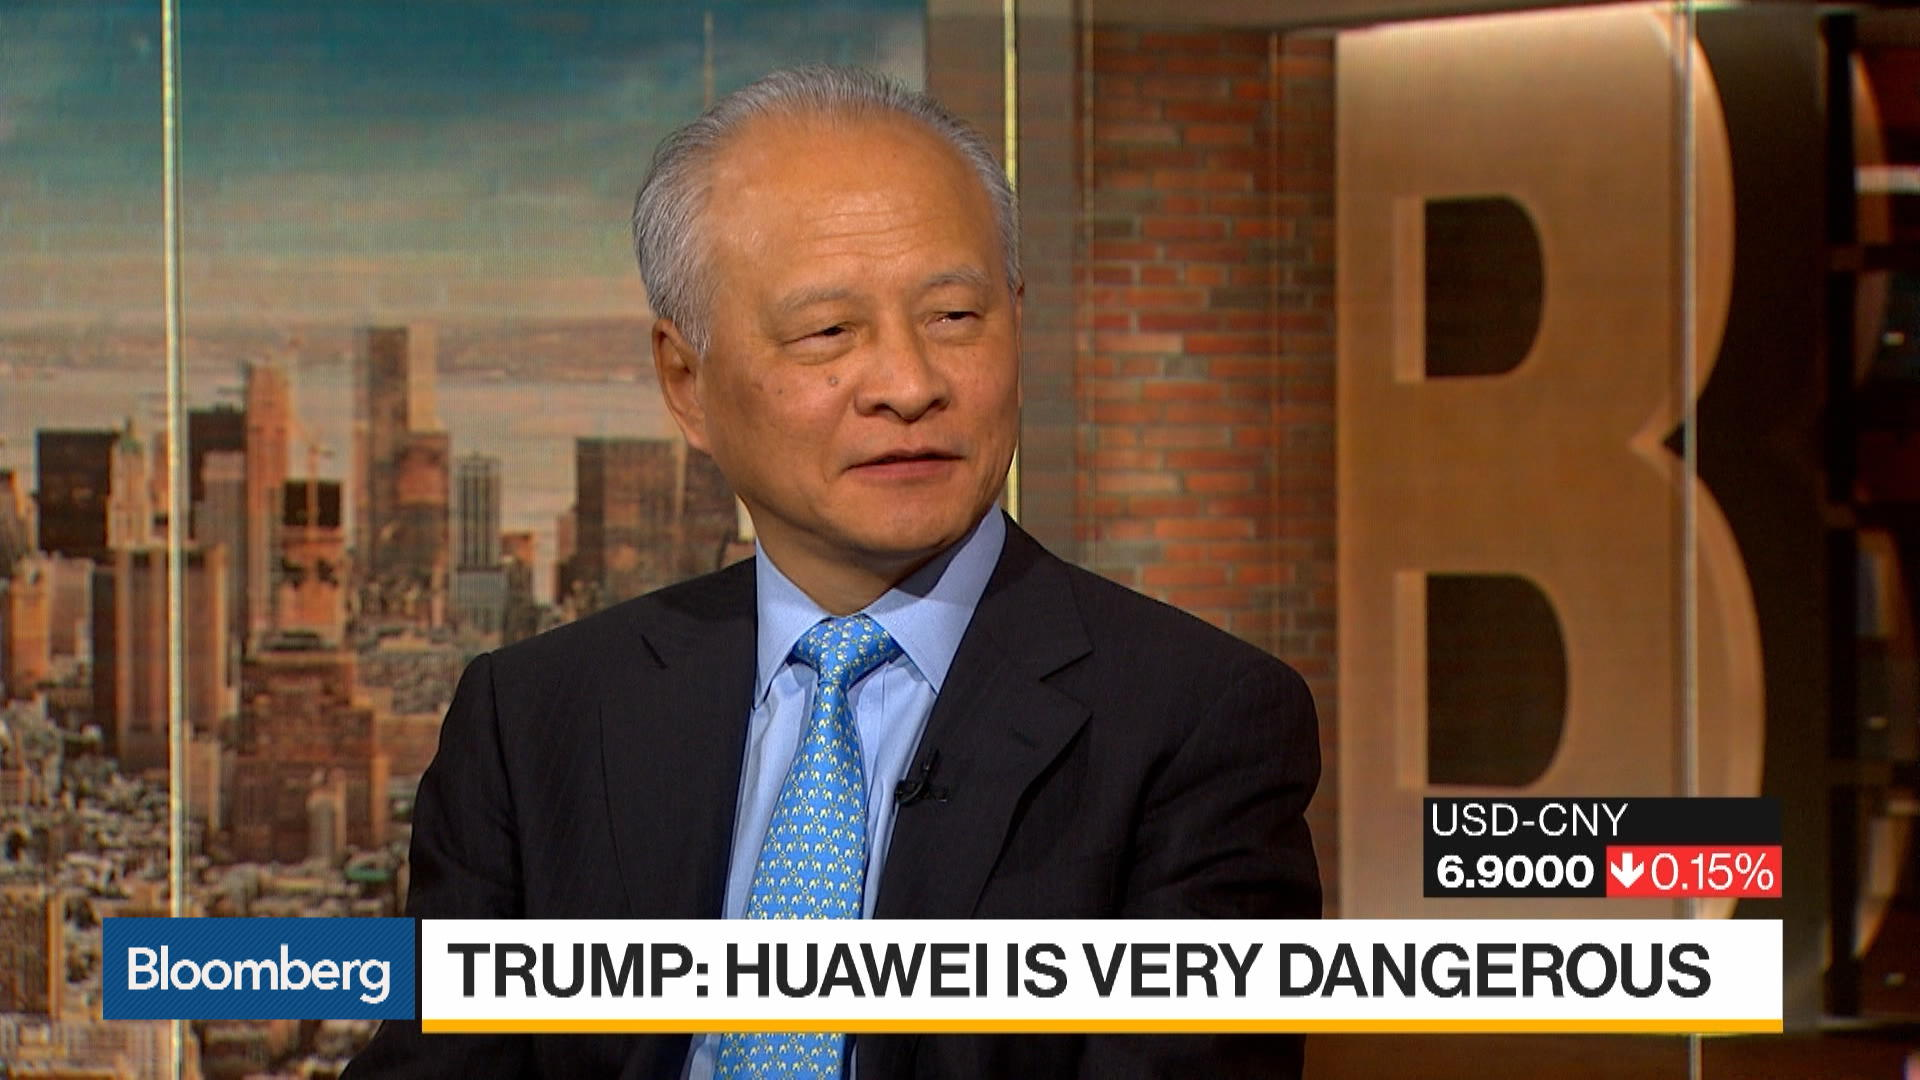 China's Cui Calls U.S. Allegations on Huawei 'Groundless'